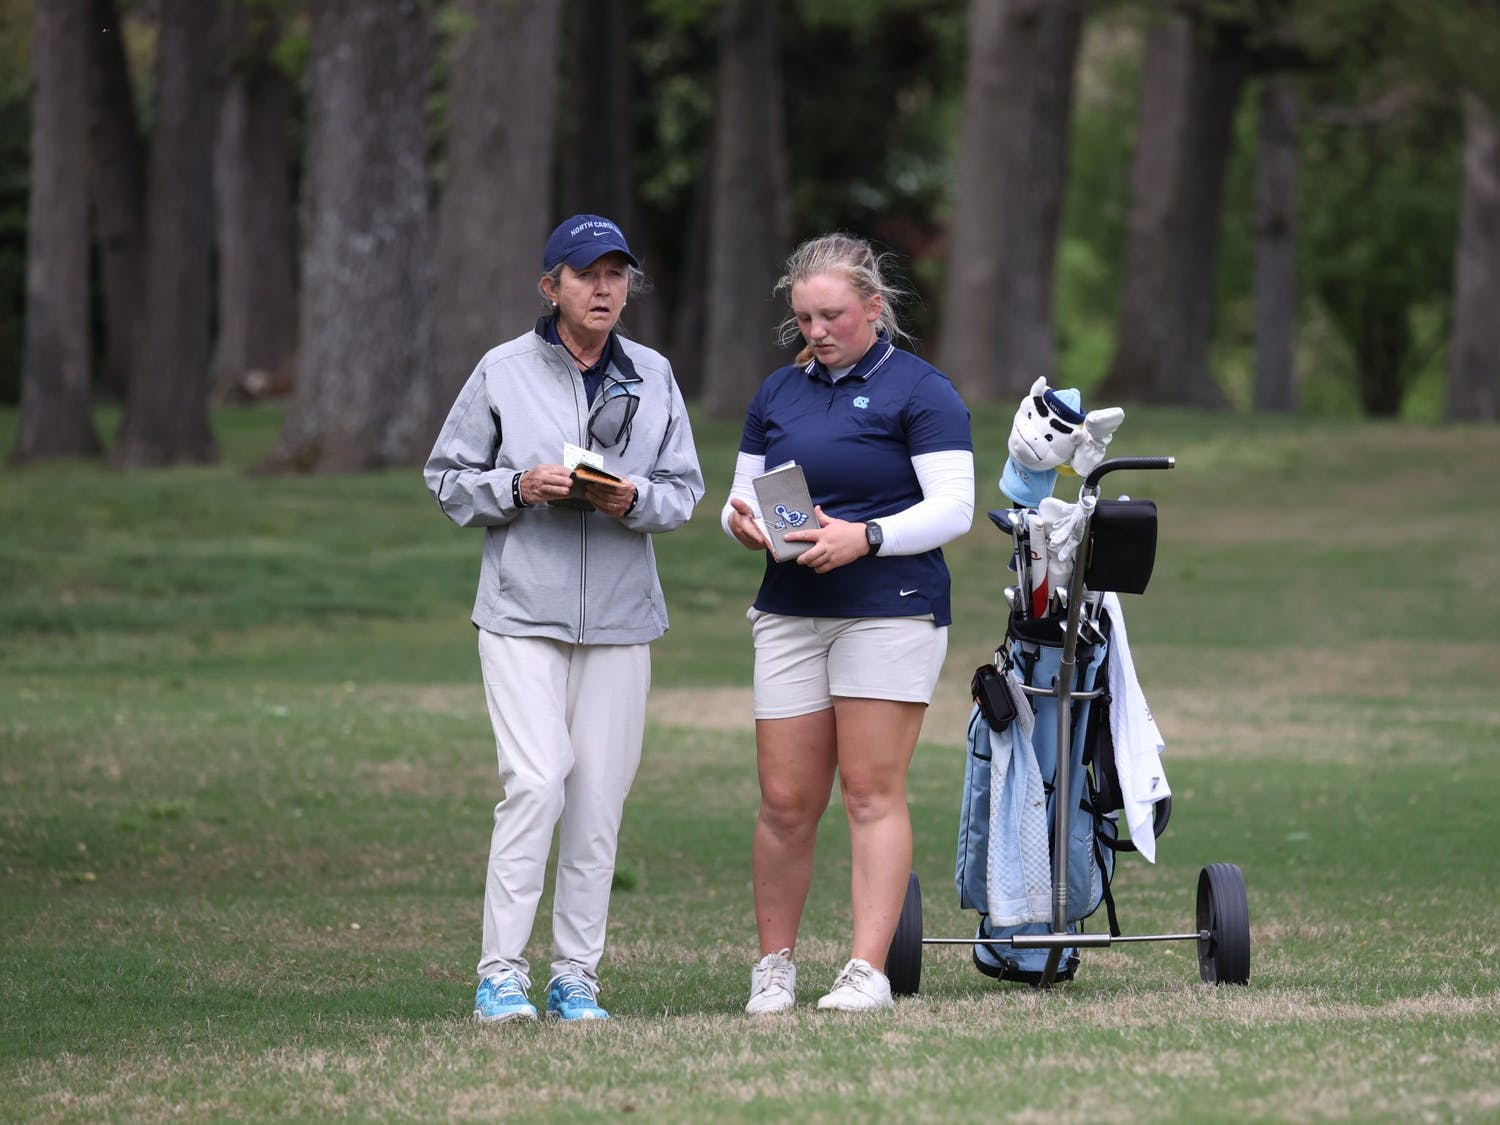 Head women's golf coach Jan Mann is retiring after 12 seasons with the Tar Heels. Photo courtesy of UNC Athletic Communications.